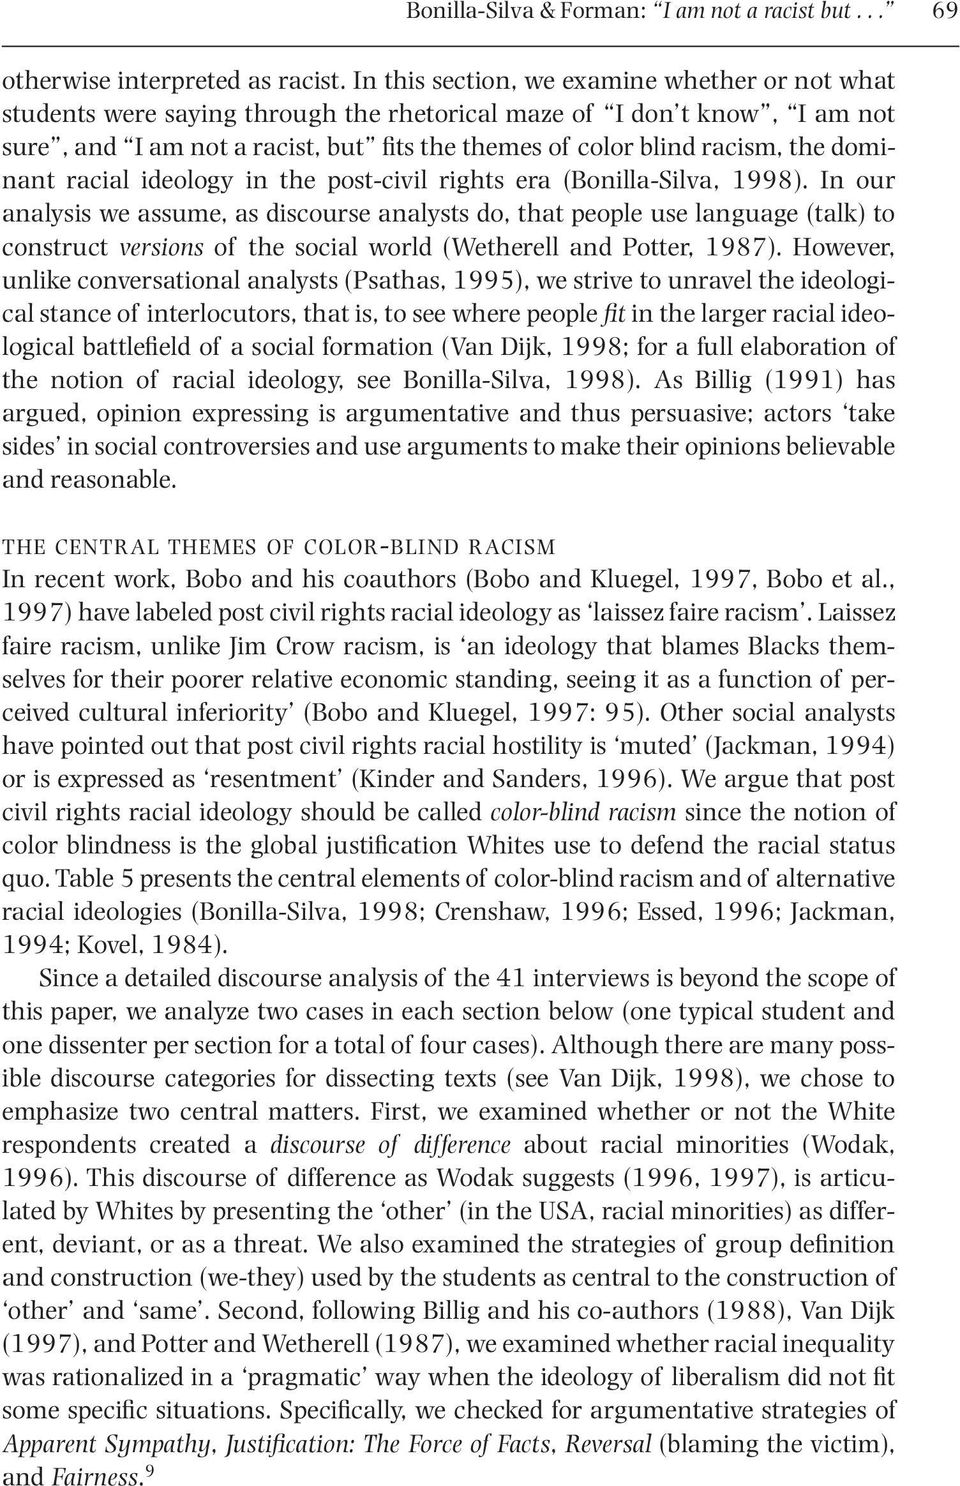 dominant racial ideology in the post-civil rights era (Bonilla-Silva, 1998).